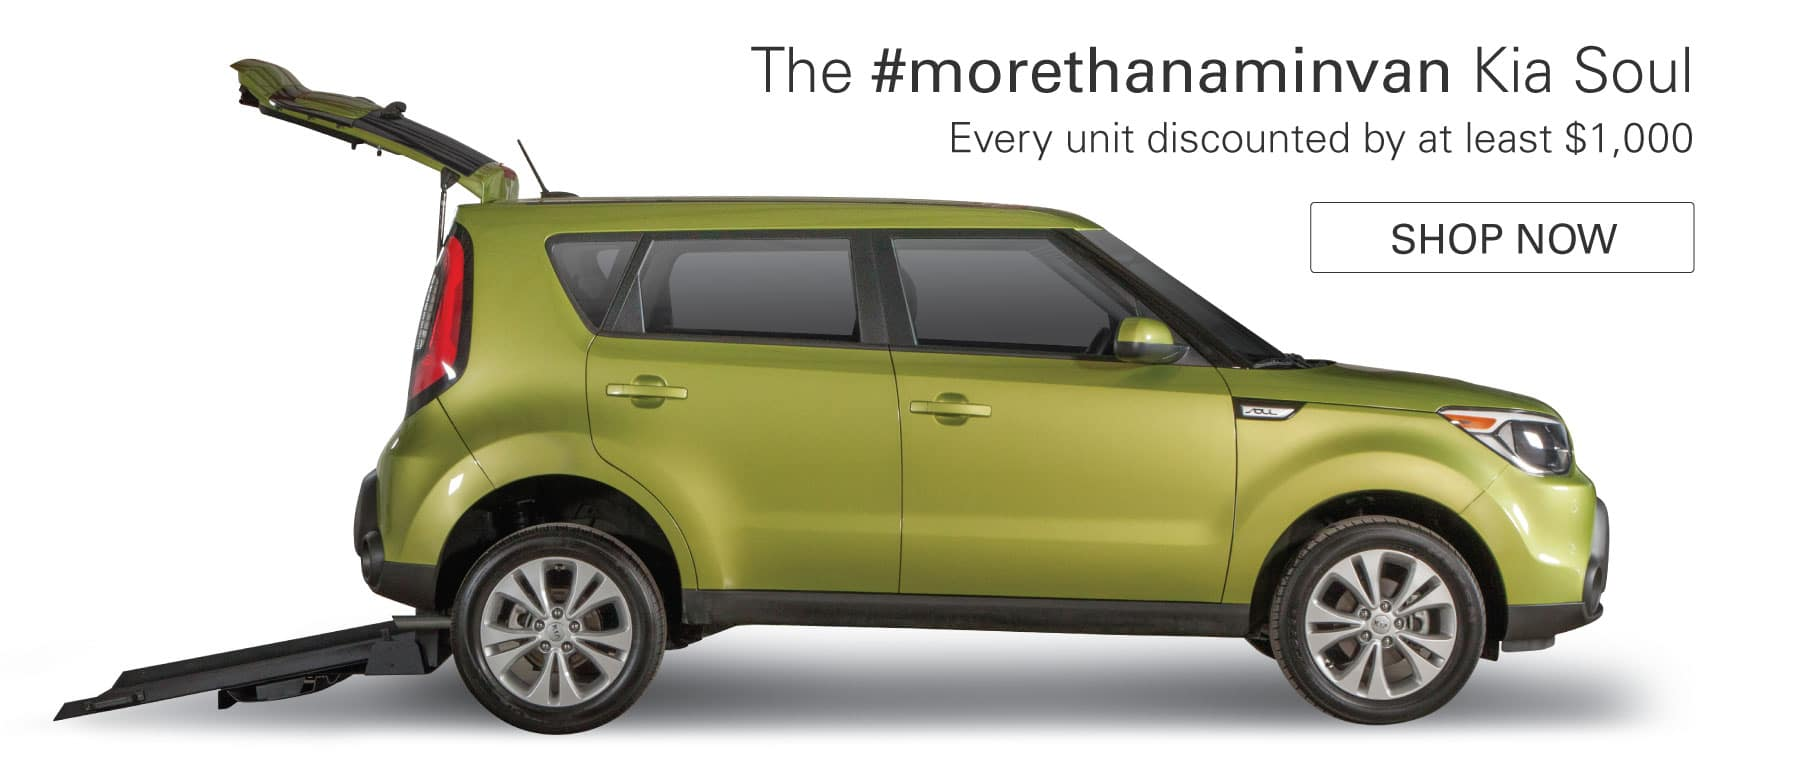 The #morethanaminivan Kia Soul - Every unit discounted by at least $1,000